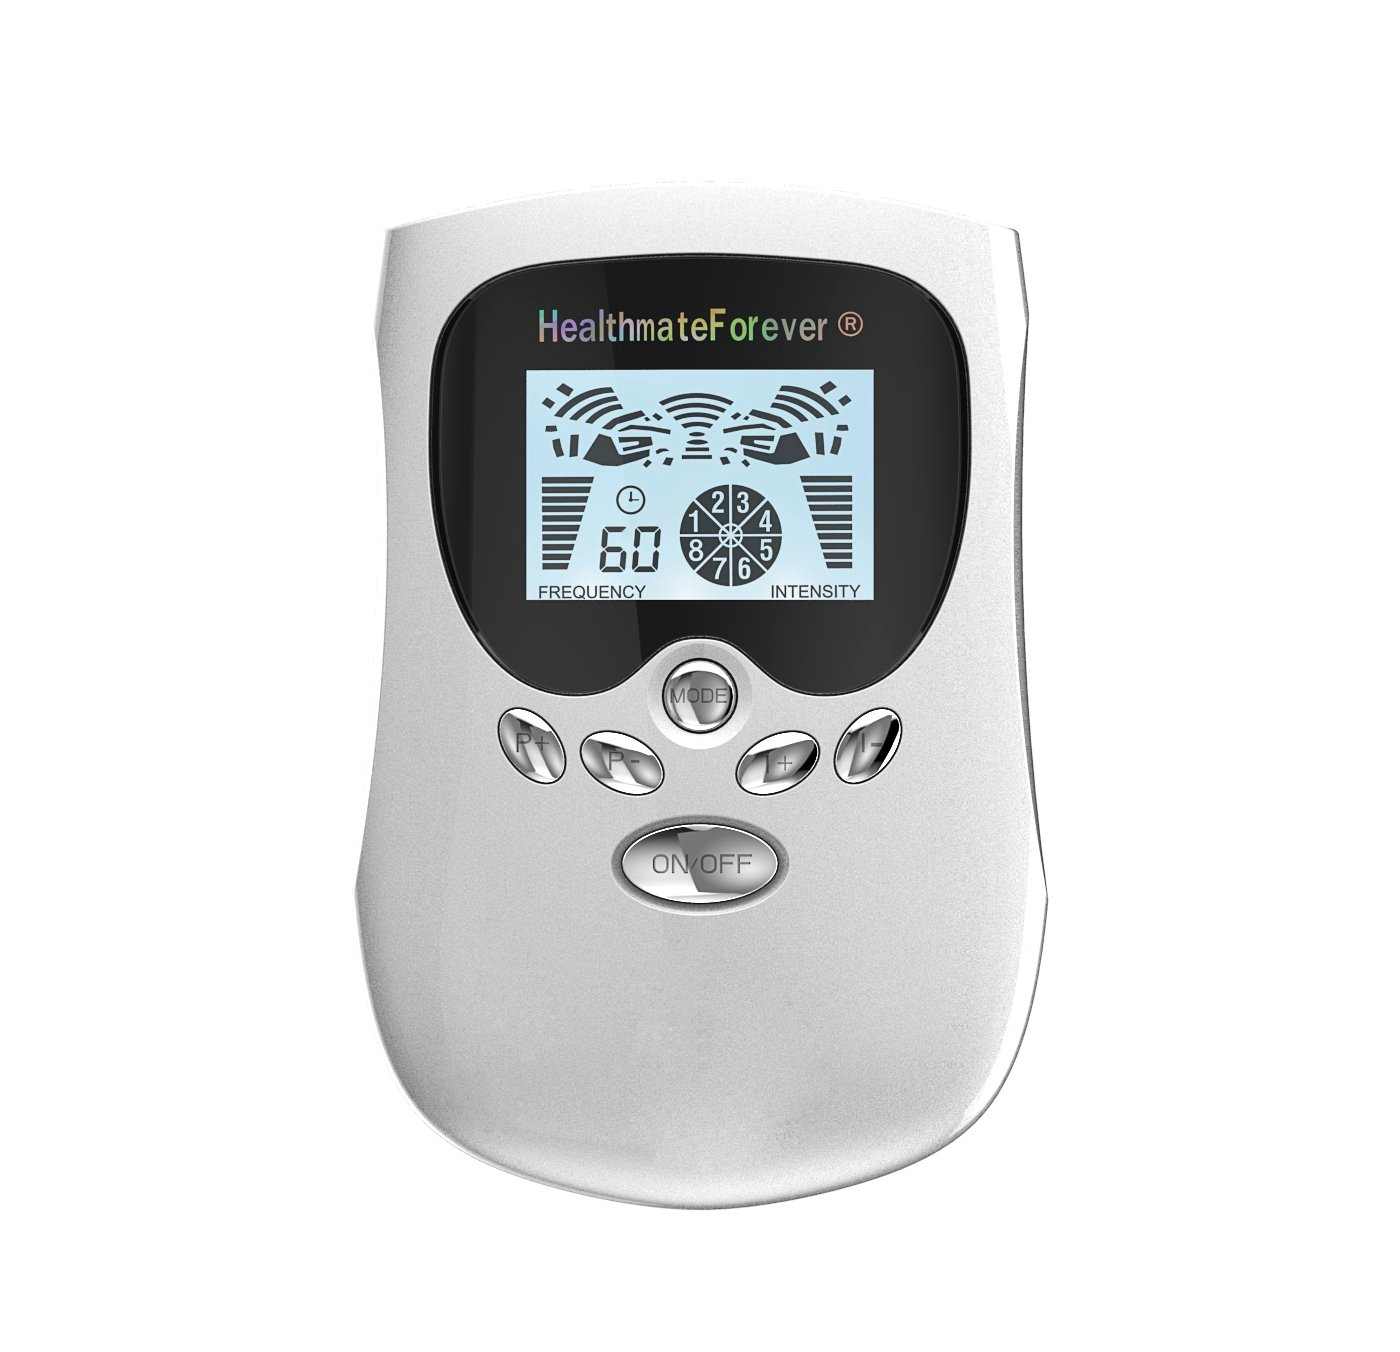 PM8 HealthmateForever TENS Unit Electrical Muscle Stimulator White + 5 Pairs of Pads